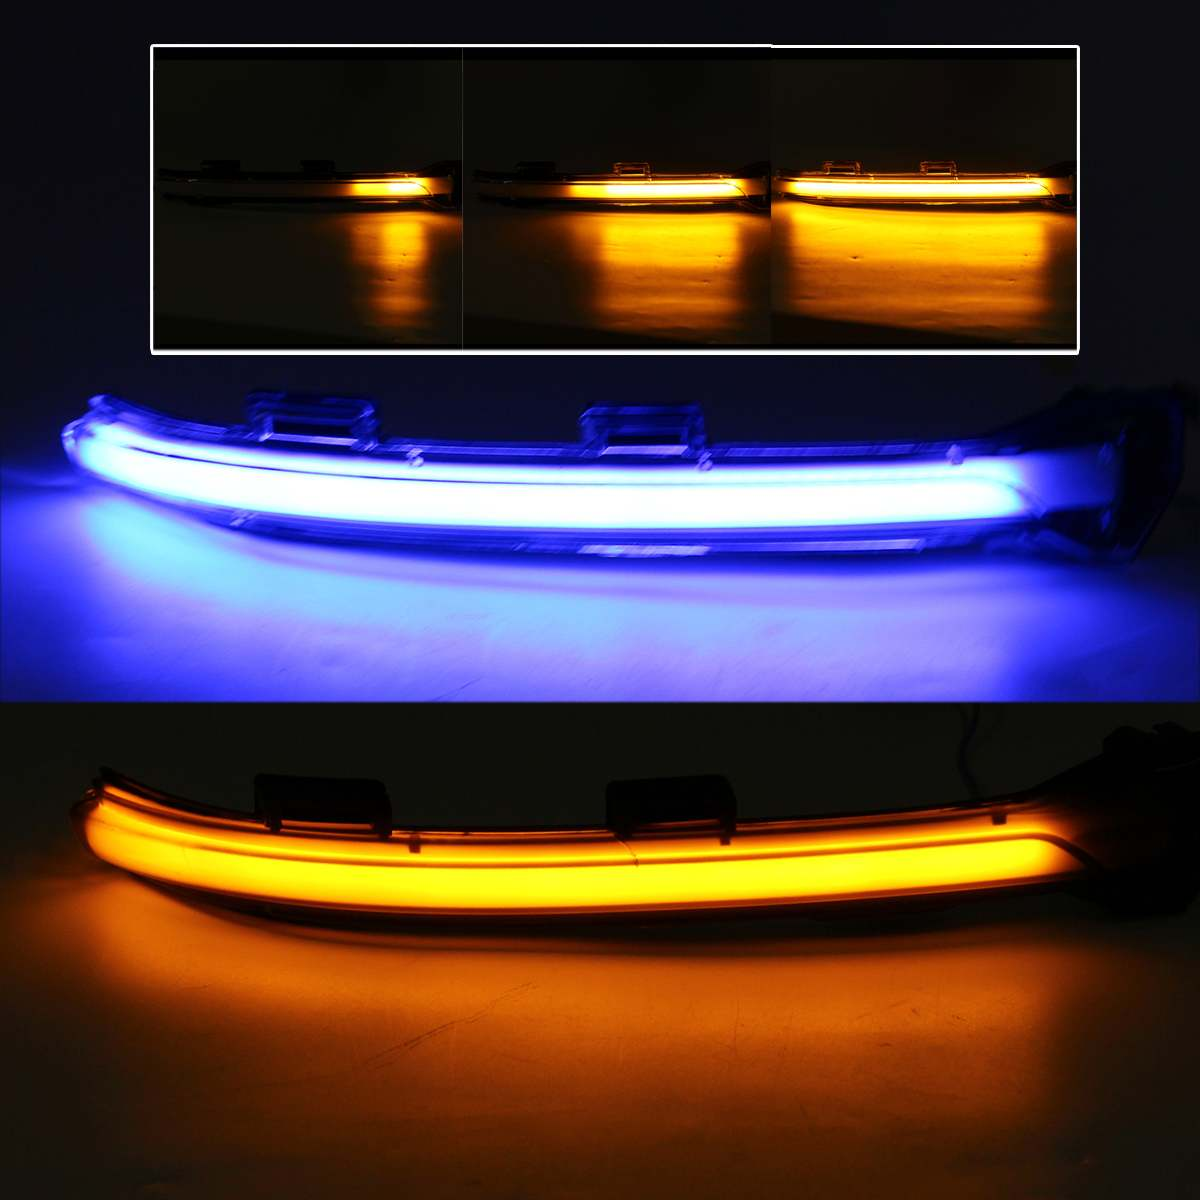 2X Blue&Amber LED Dynamic Turn Signal Light Side Rearview Mirror Indicator for <font><b>VW</b></font> <font><b>GOLF</b></font> <font><b>7</b></font> <font><b>GTI</b></font> R GTE SPORTSVAN 14-17 TOURAN 16-18 image